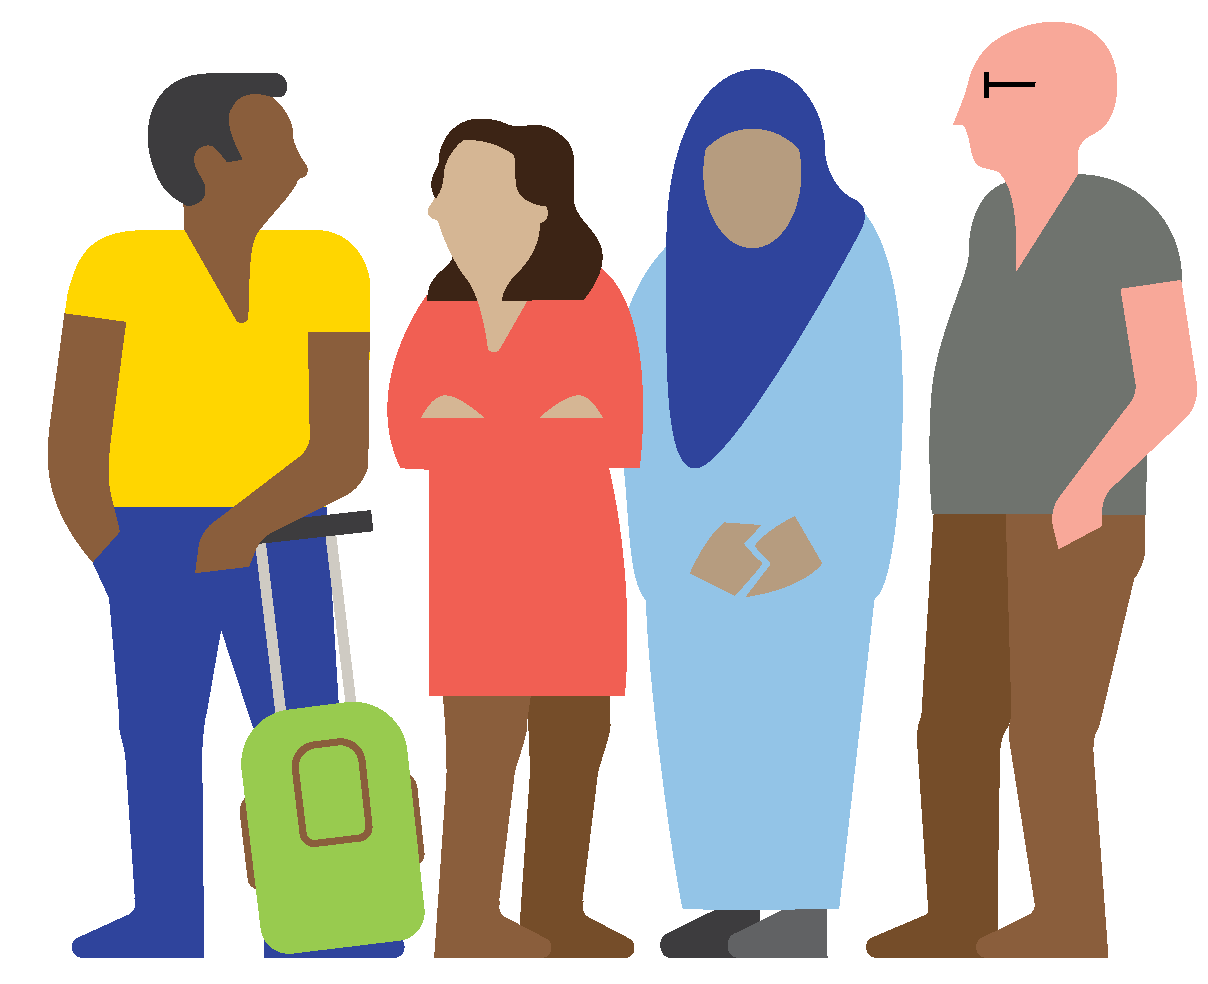 Illustration of a group of people depicting our diverse communities.